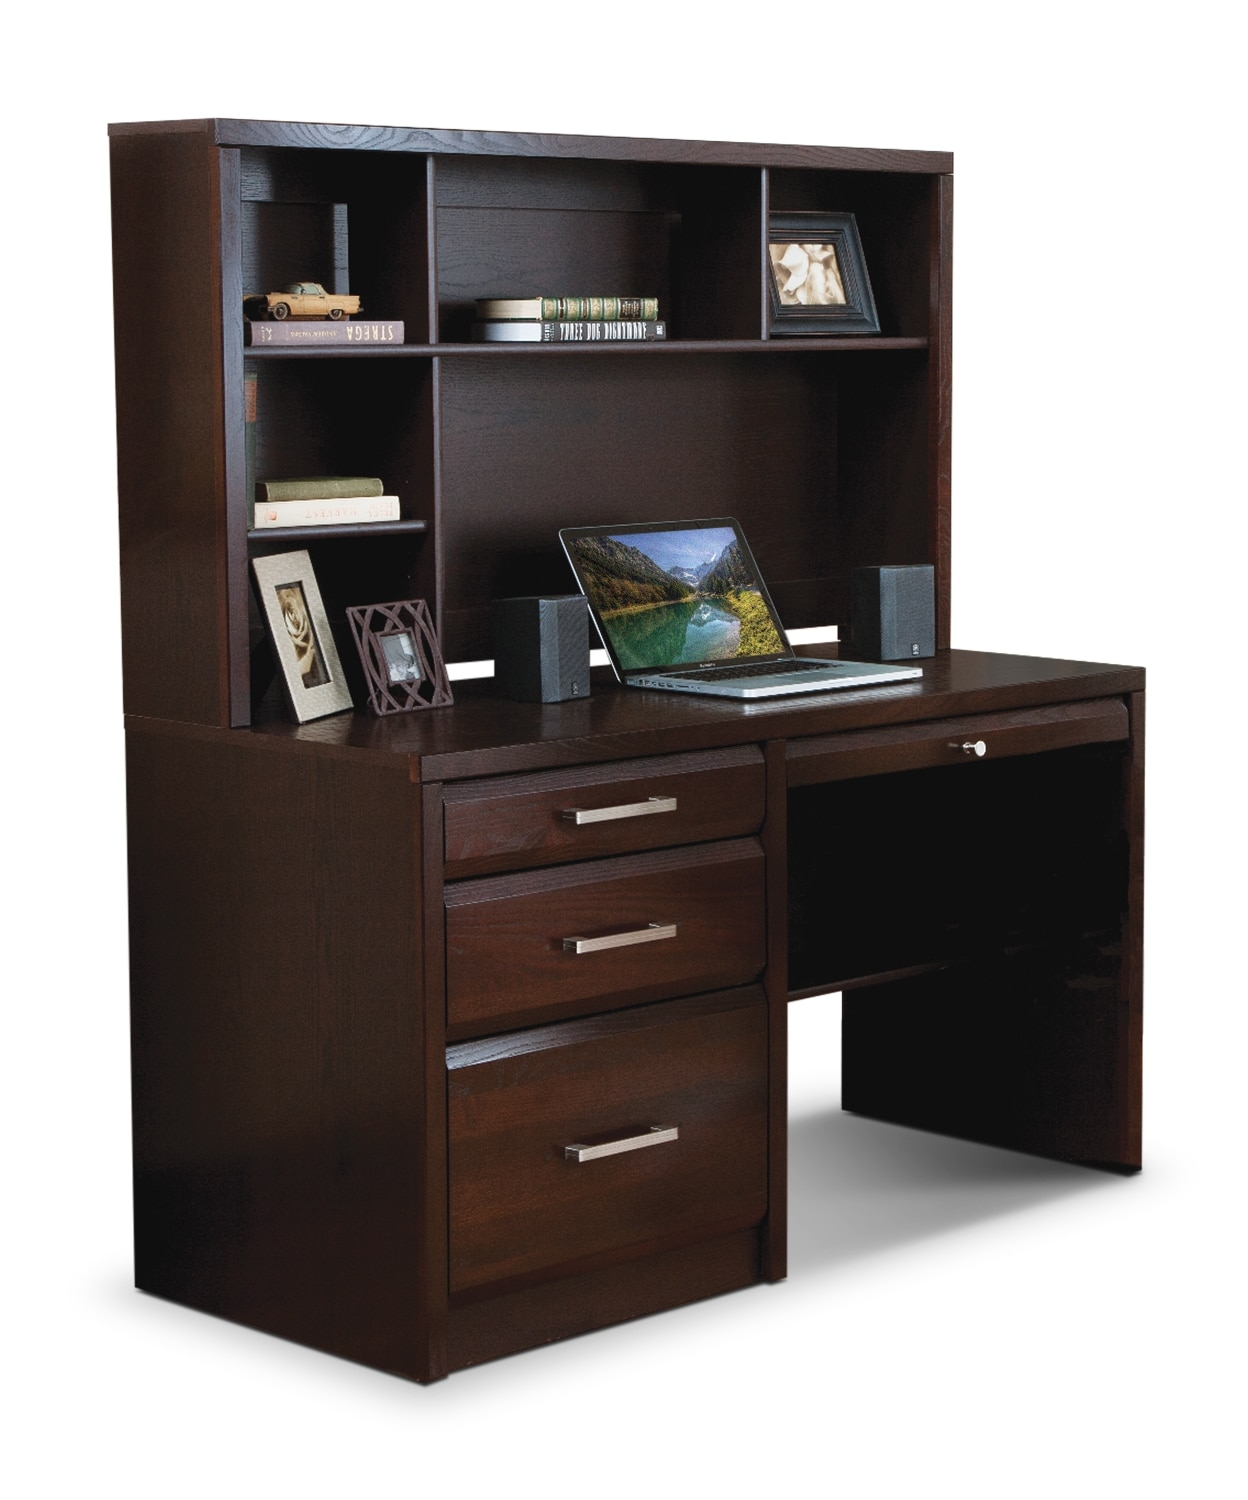 Home Office Furniture - Reed 2-Piece Desk - Espresso